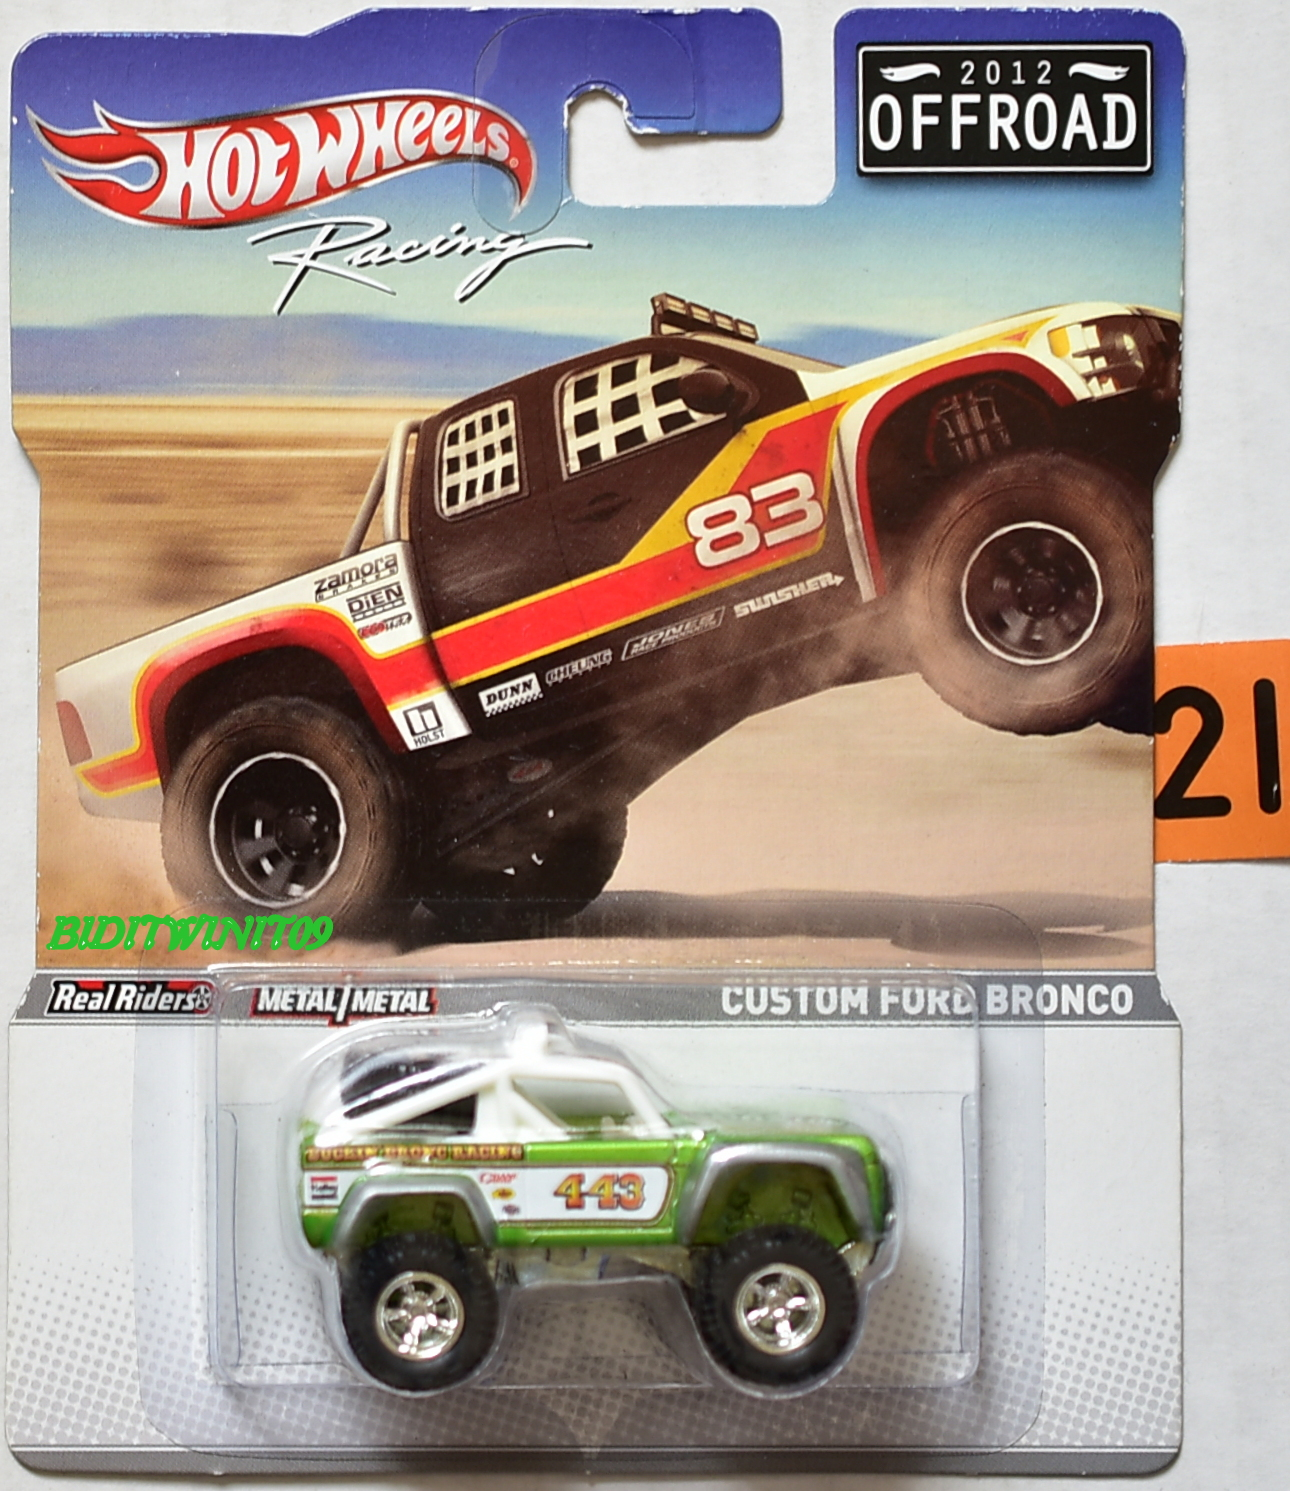 HOT WHEELS RACING 2012 OFFROAD CUSTOM FORD BRONCO